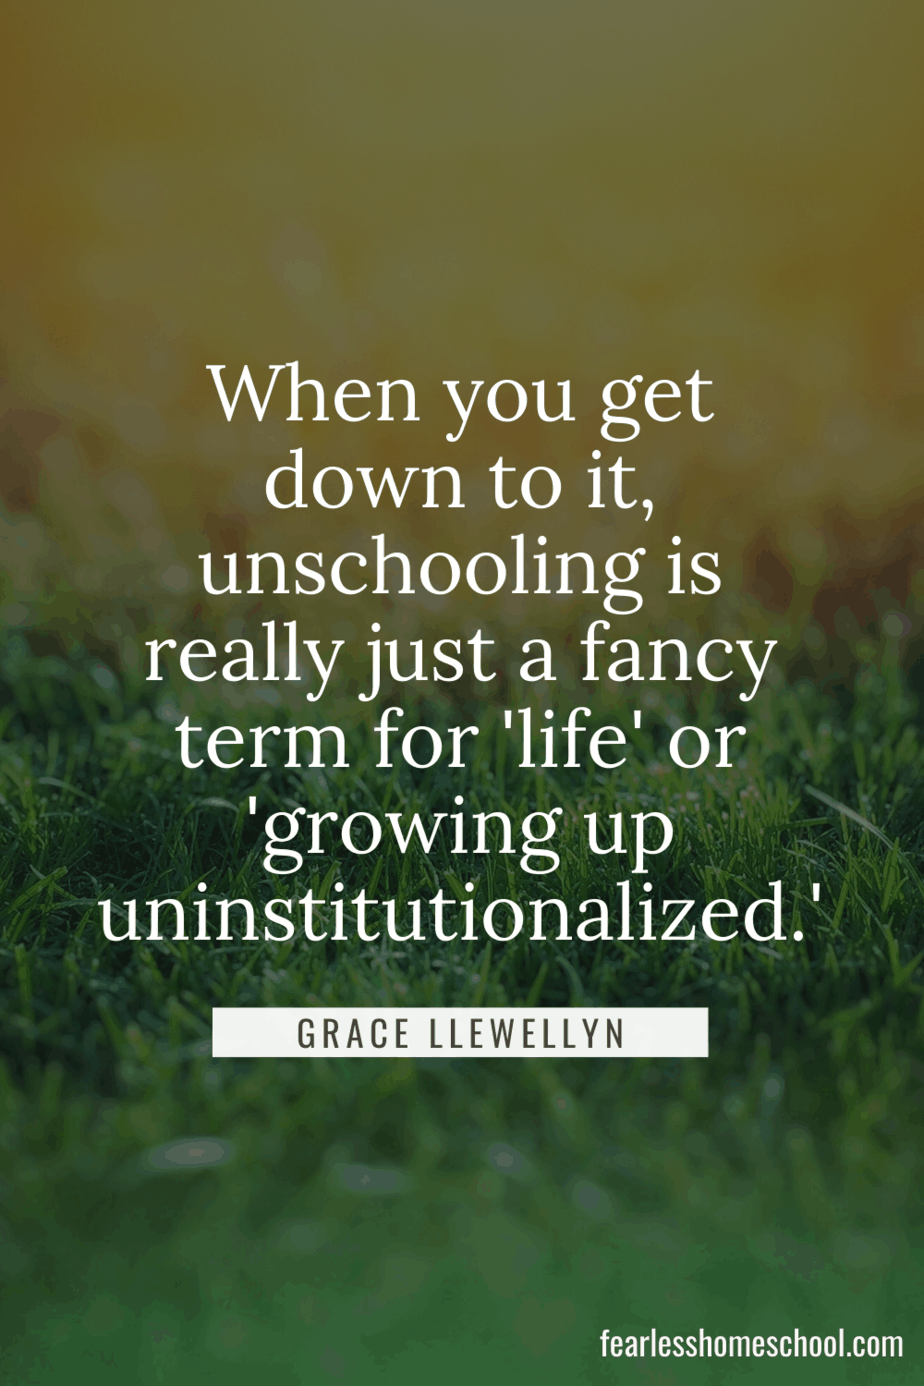 When you get down to it, unschooling is really just a fancy term for 'life' or 'growing up uninstitutionalized. grace llewellyn homeschooling quote